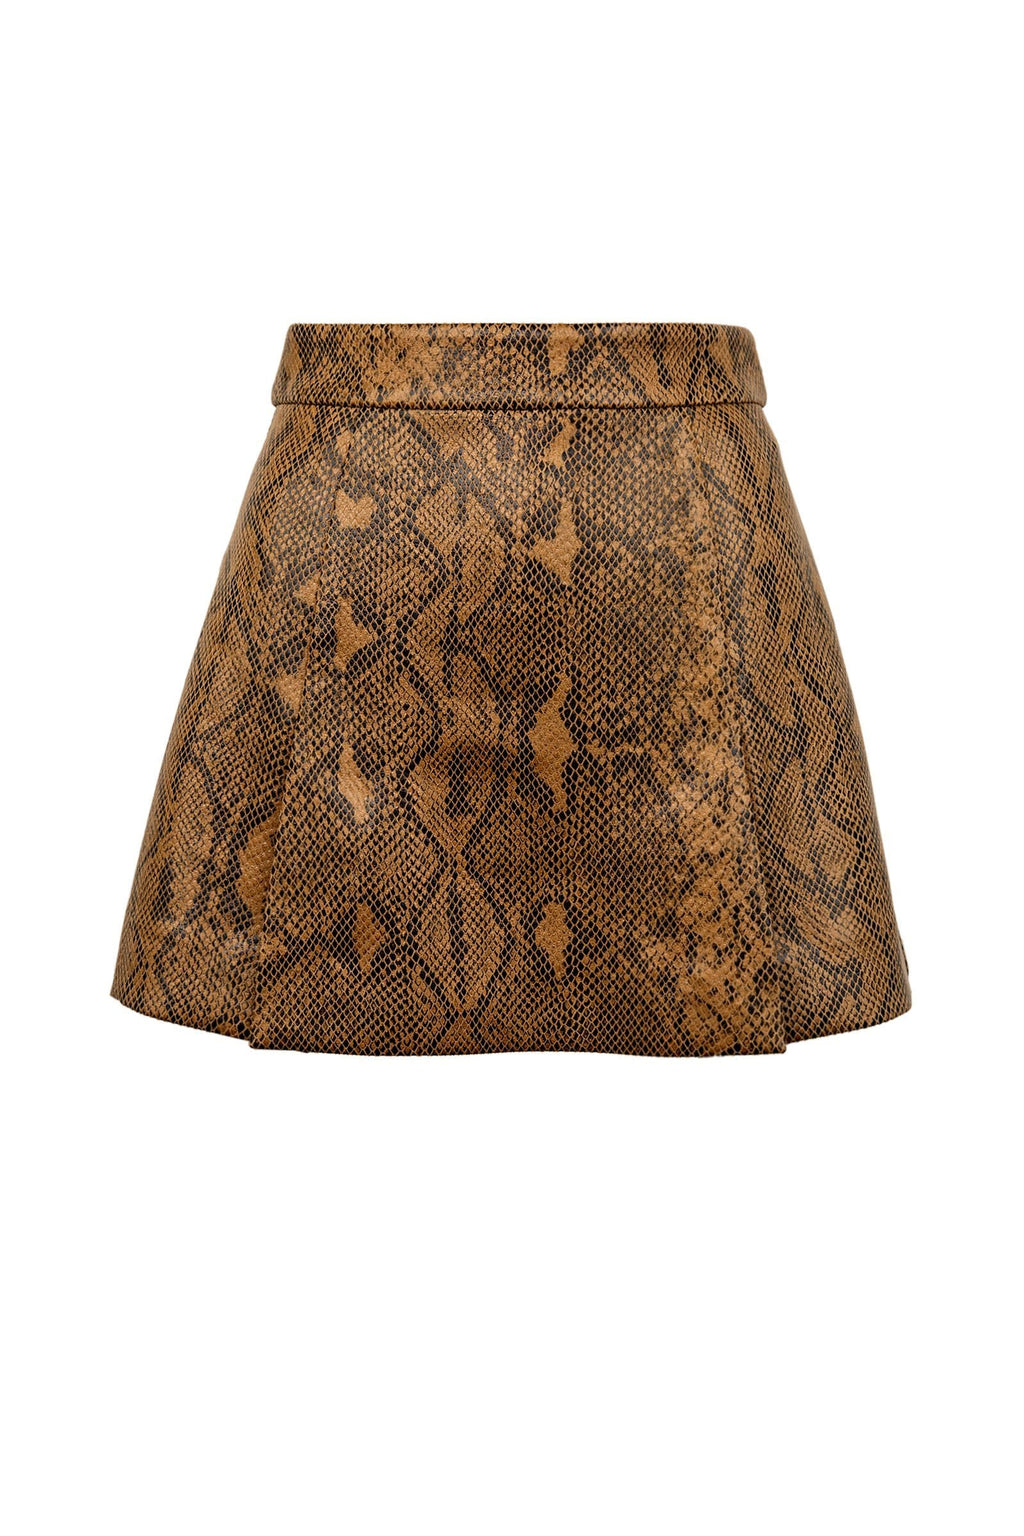 Brown Snakeskin Mini Skirt | J.ING Women's Apparel